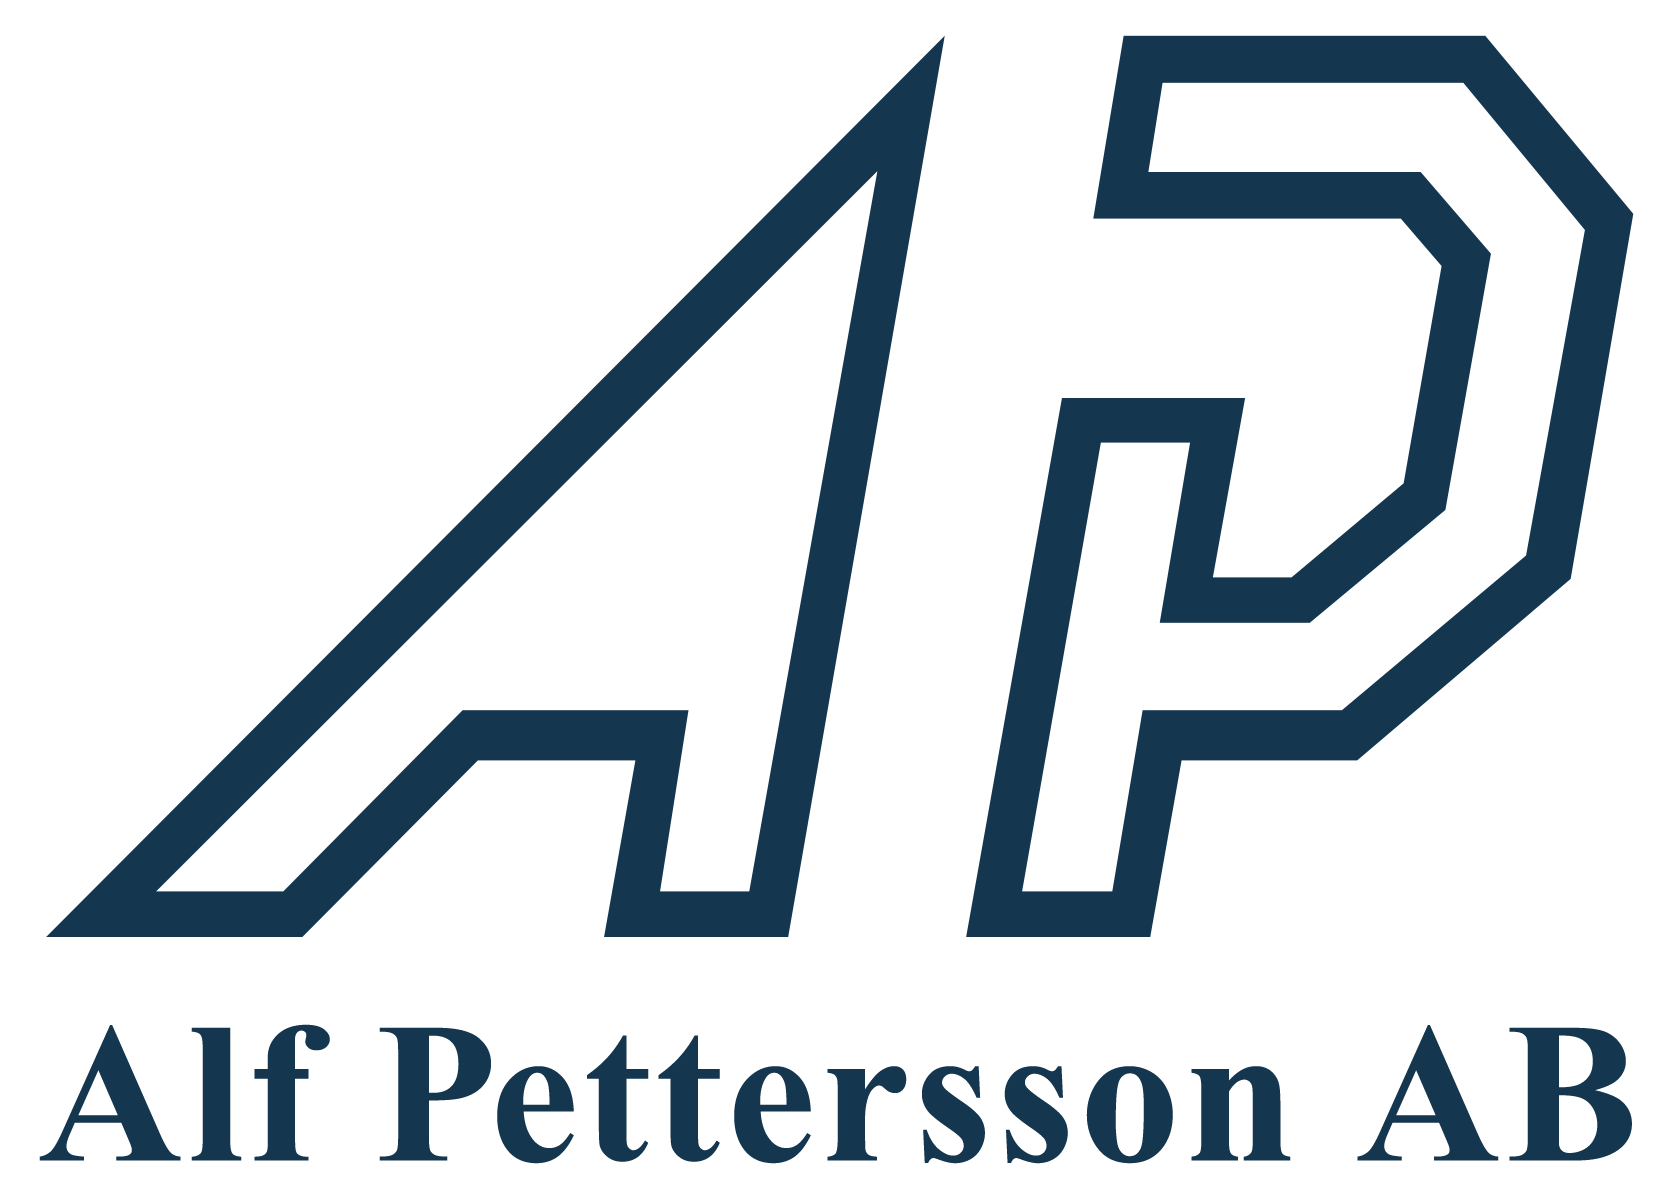 Alf Pettersson AB